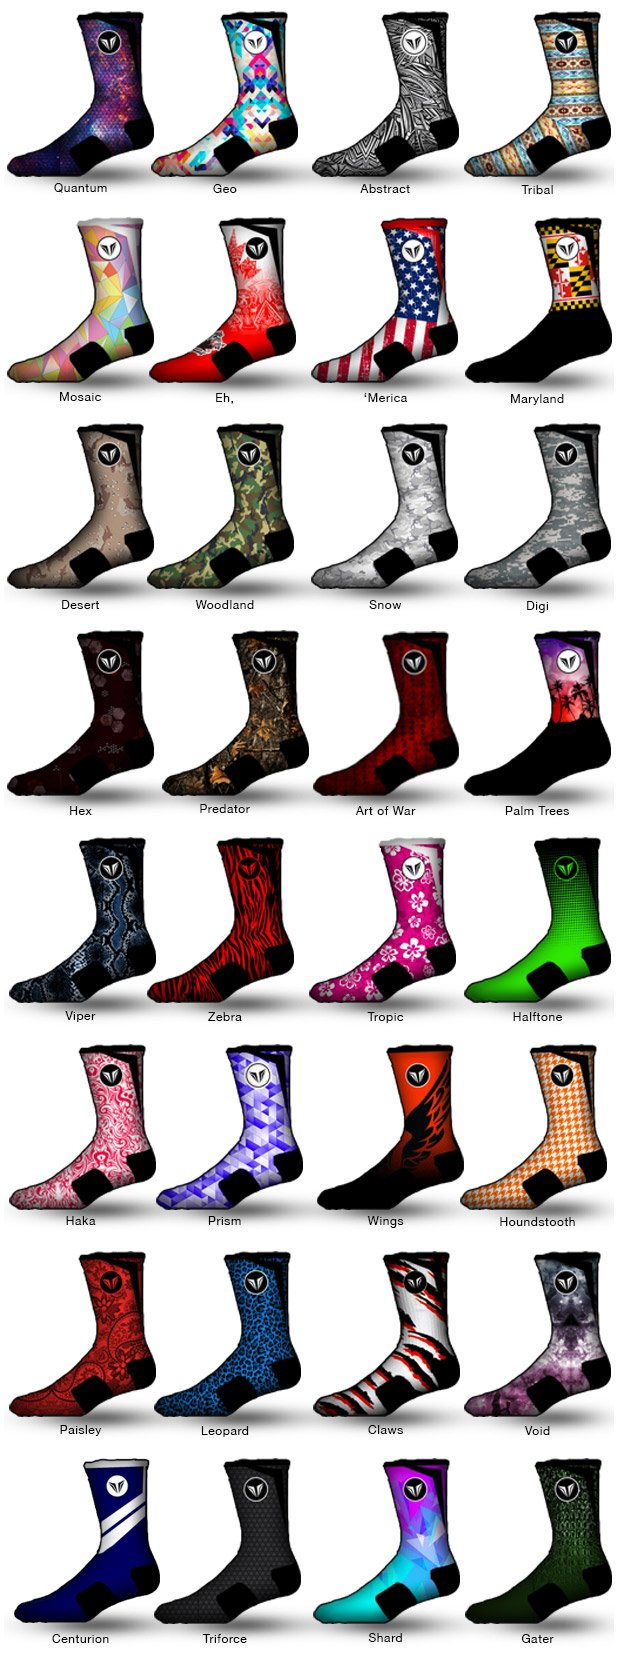 Vision Wear Athletic Socks